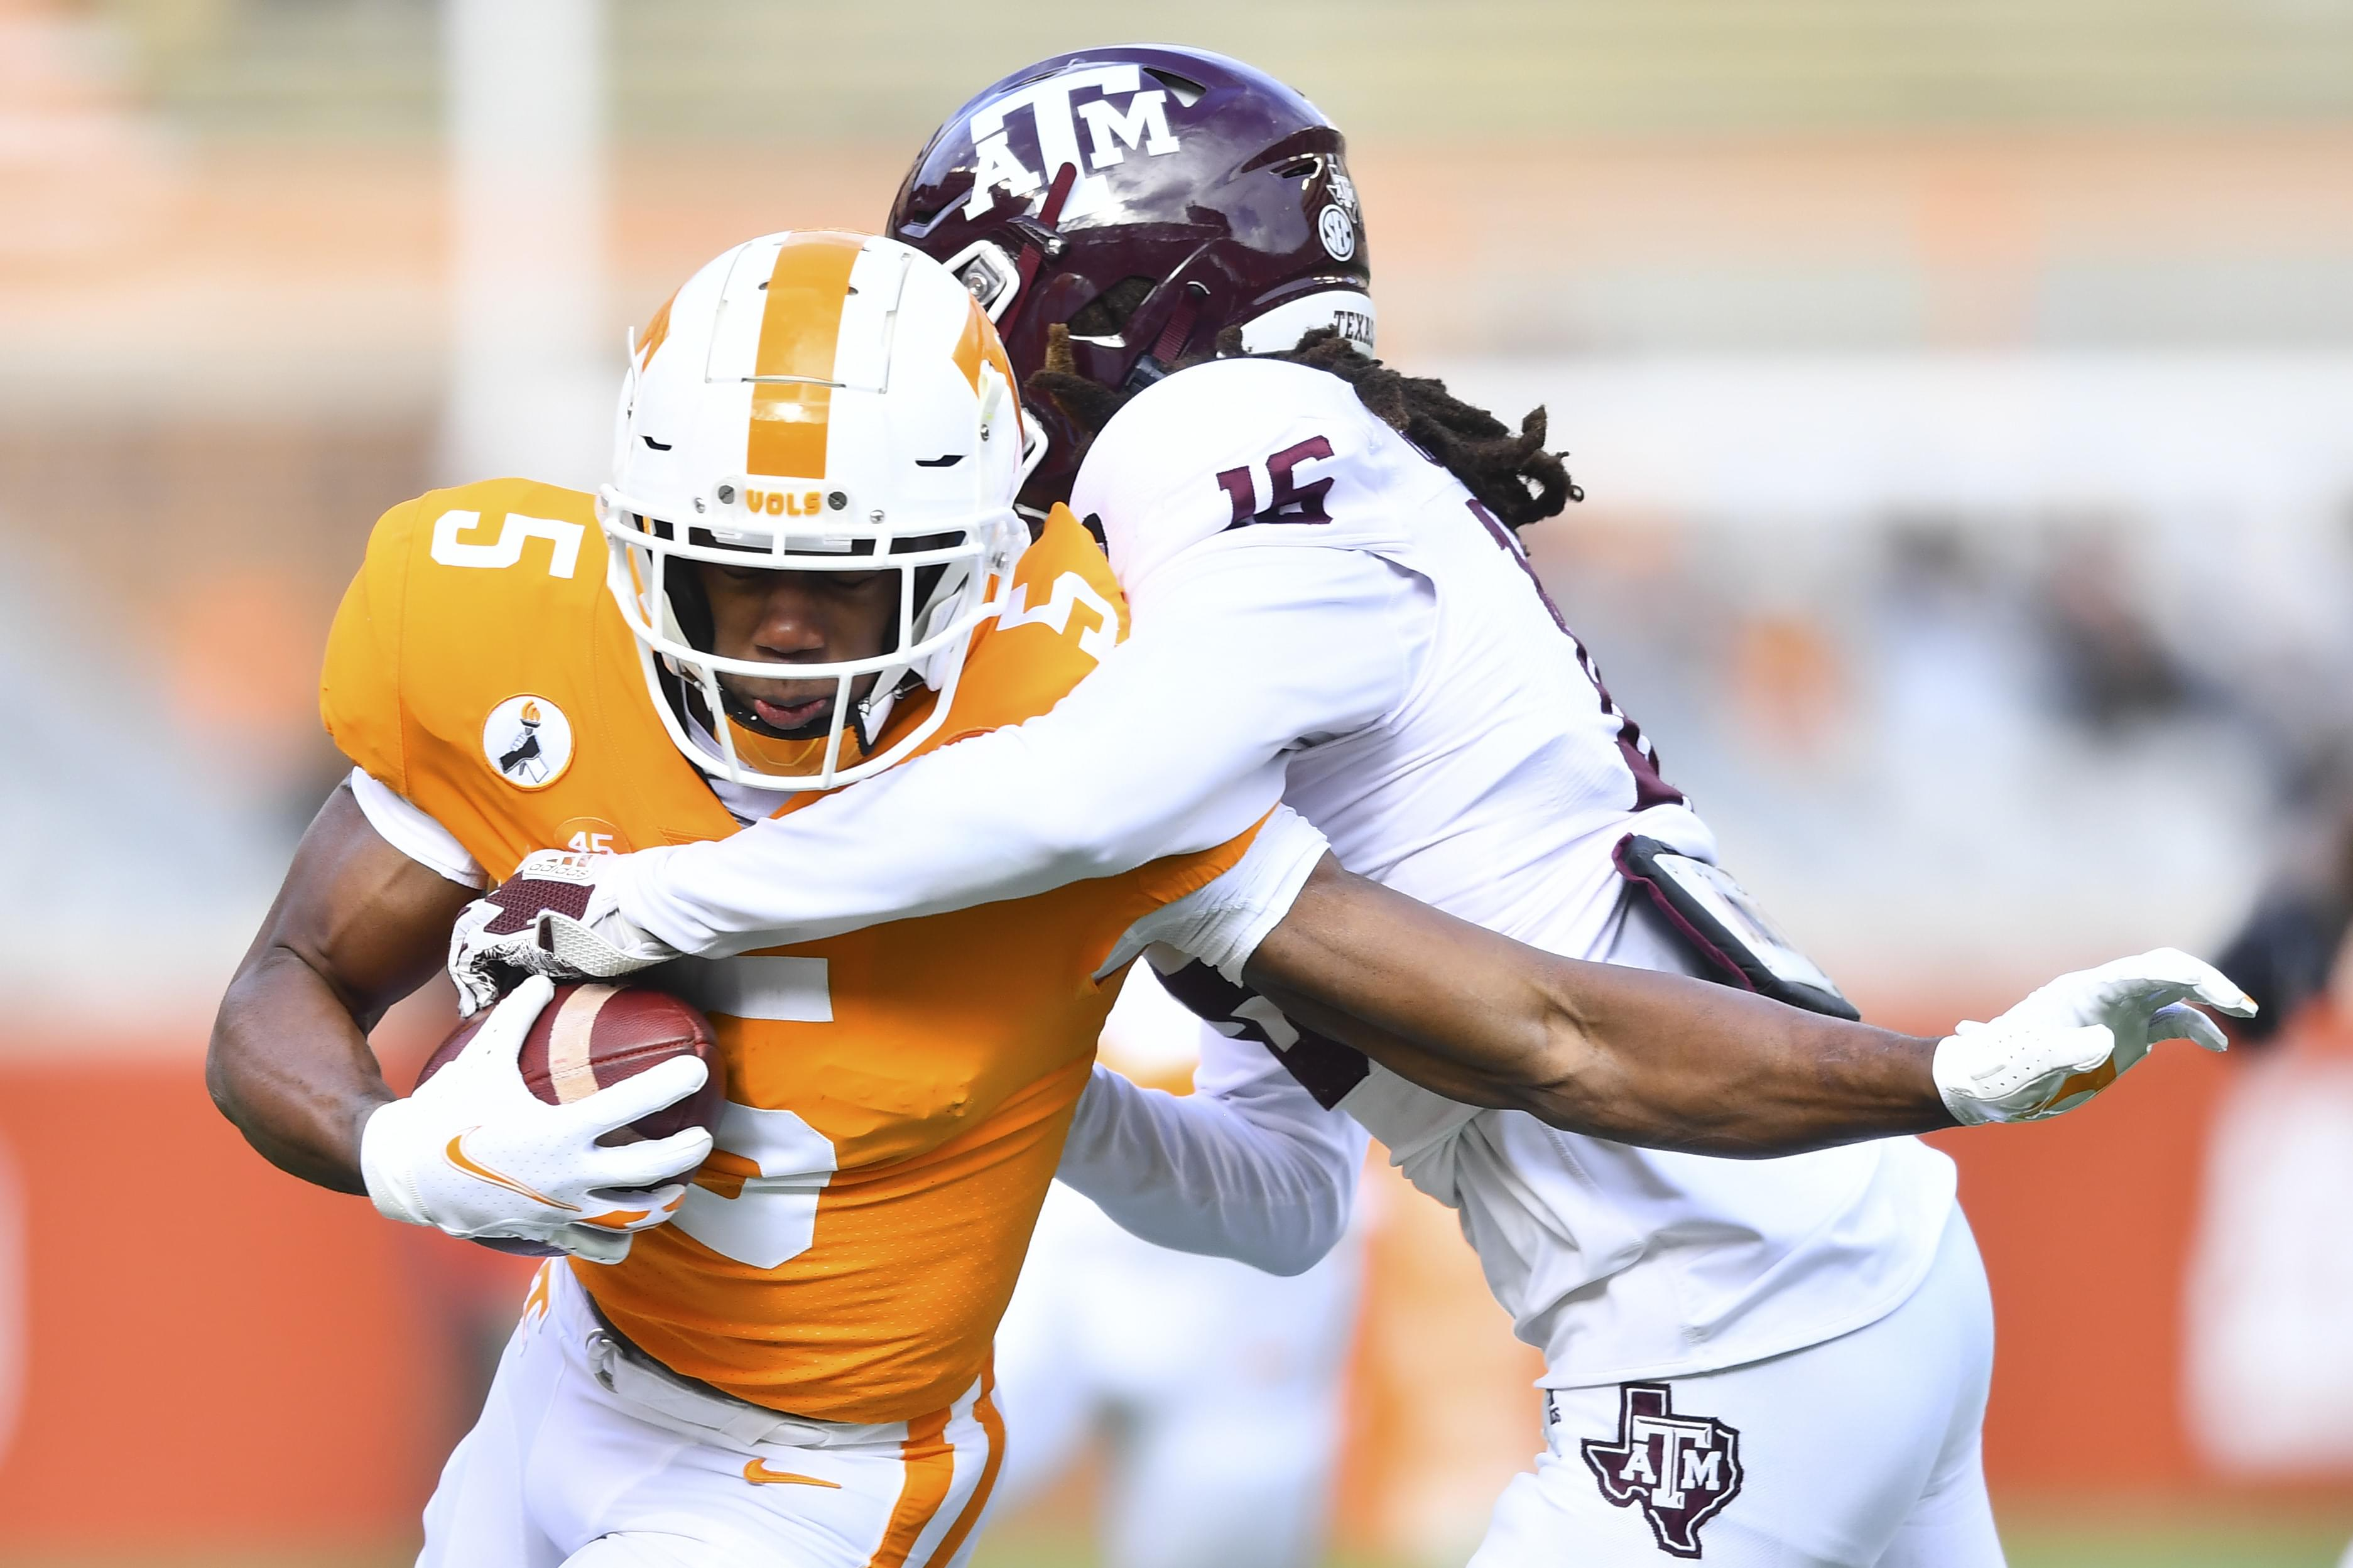 PHOTO GALLERY: Tennessee vs. Texas A&M, seniors and game images